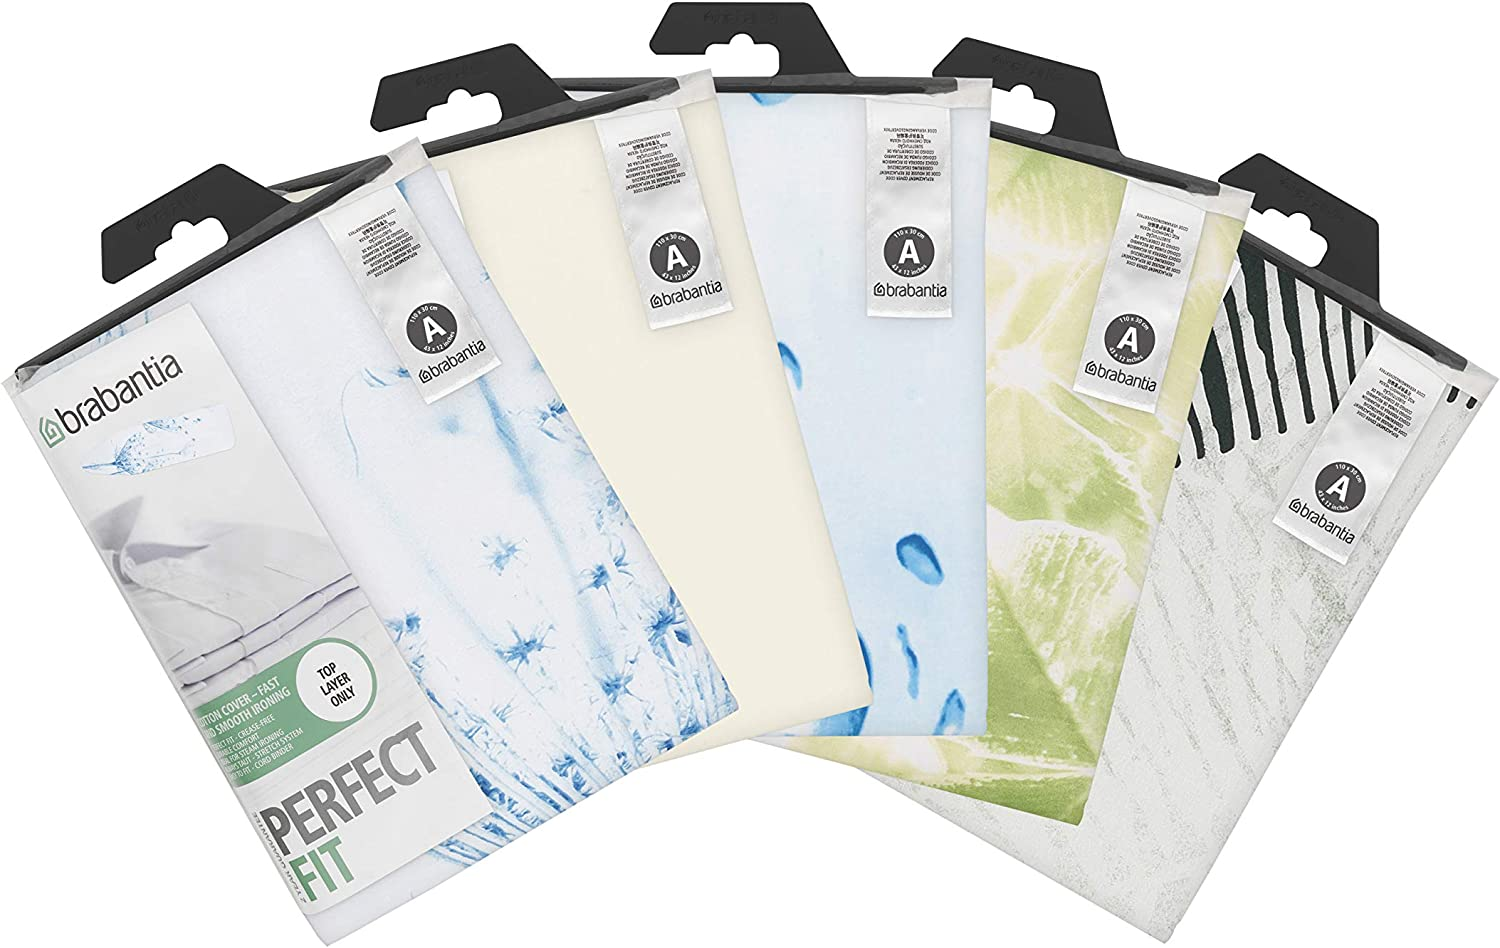 Brabantia Metallised Silver Ironing Board Cover with 2 mm Foam, L 110 x W 30 cm, Size A Neutral Assorted